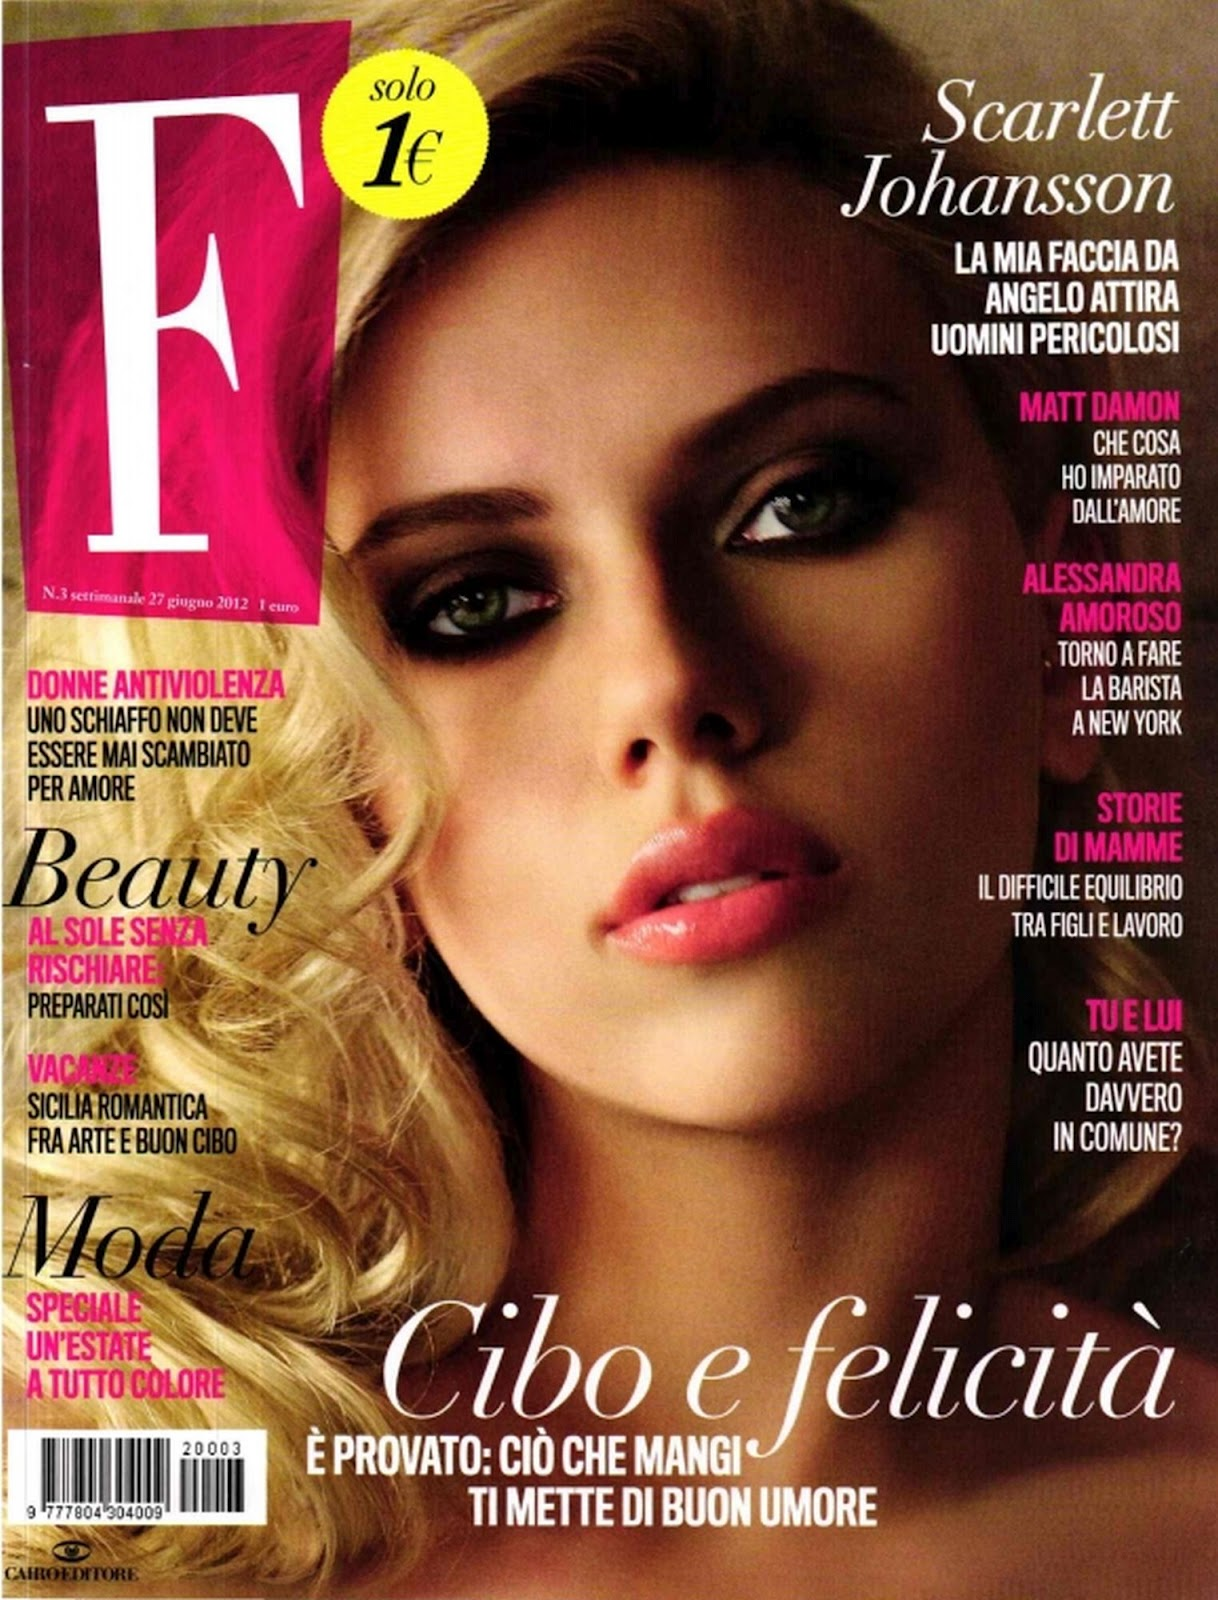 cover of F Magazine Italy June 2012 Issue with her beautiful portrait